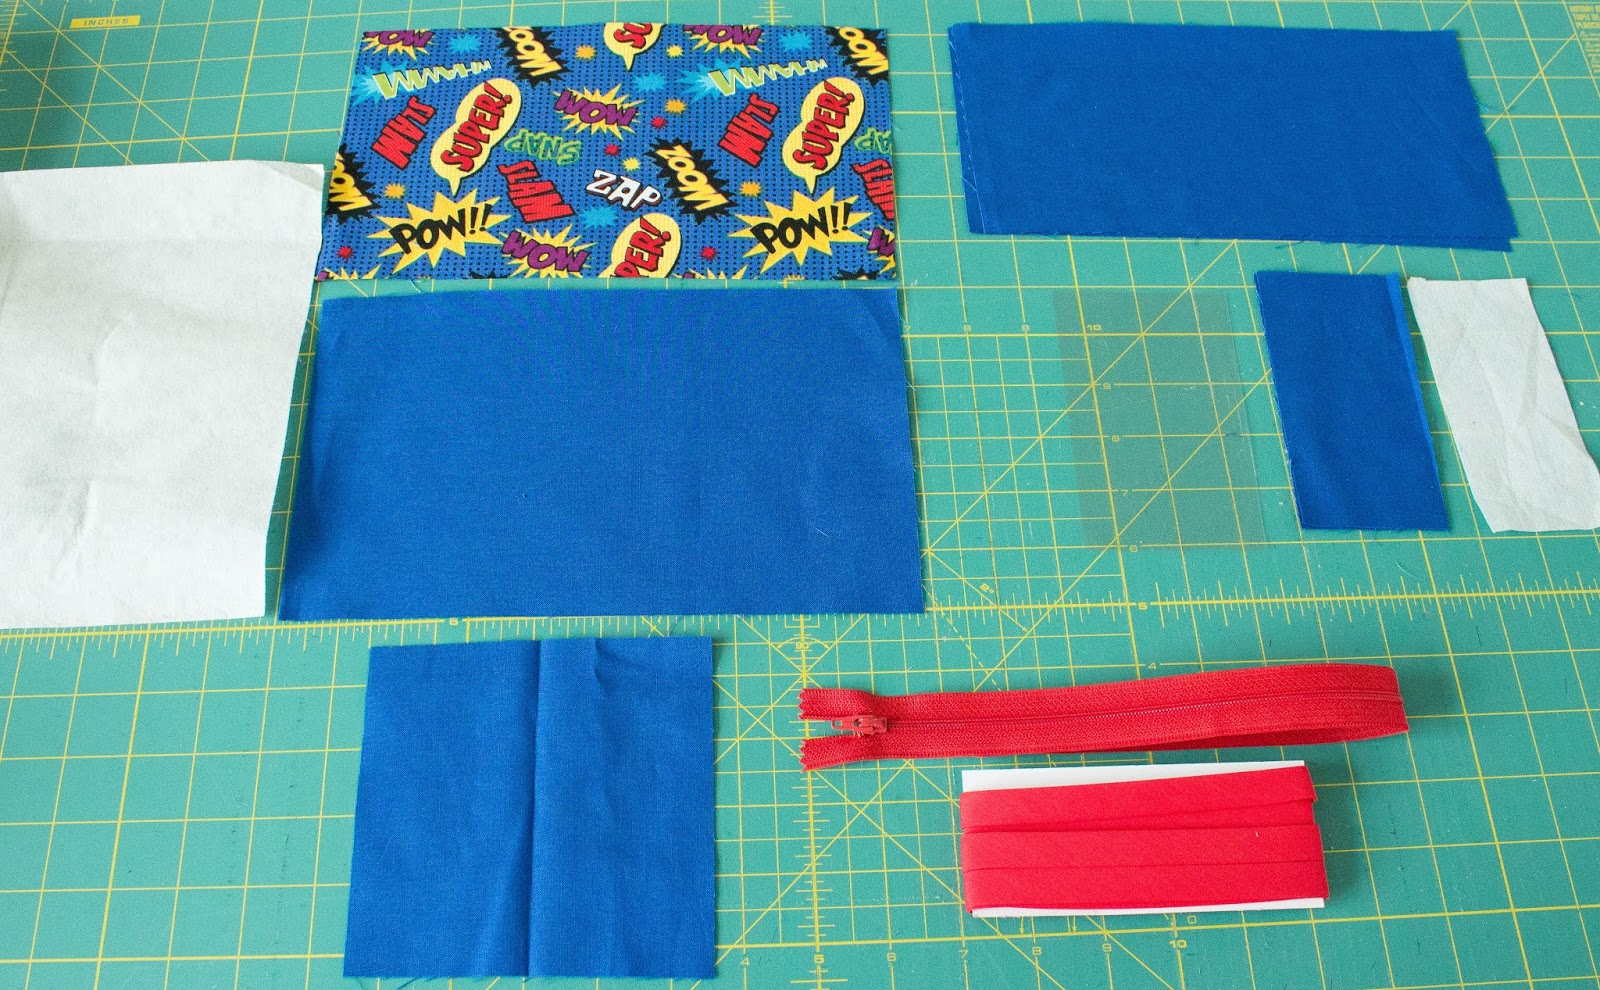 May 28,  · How to Sew a Fabric Pouch. Sewing is a fun, easy and useful hobby. One of the easiest things to sew is a pretty drawstring bag or pouch. Steps. 1. Decide what size and pattern you want your bag to be. Take out the pins. 9. Turn the bag inside out. %(68).